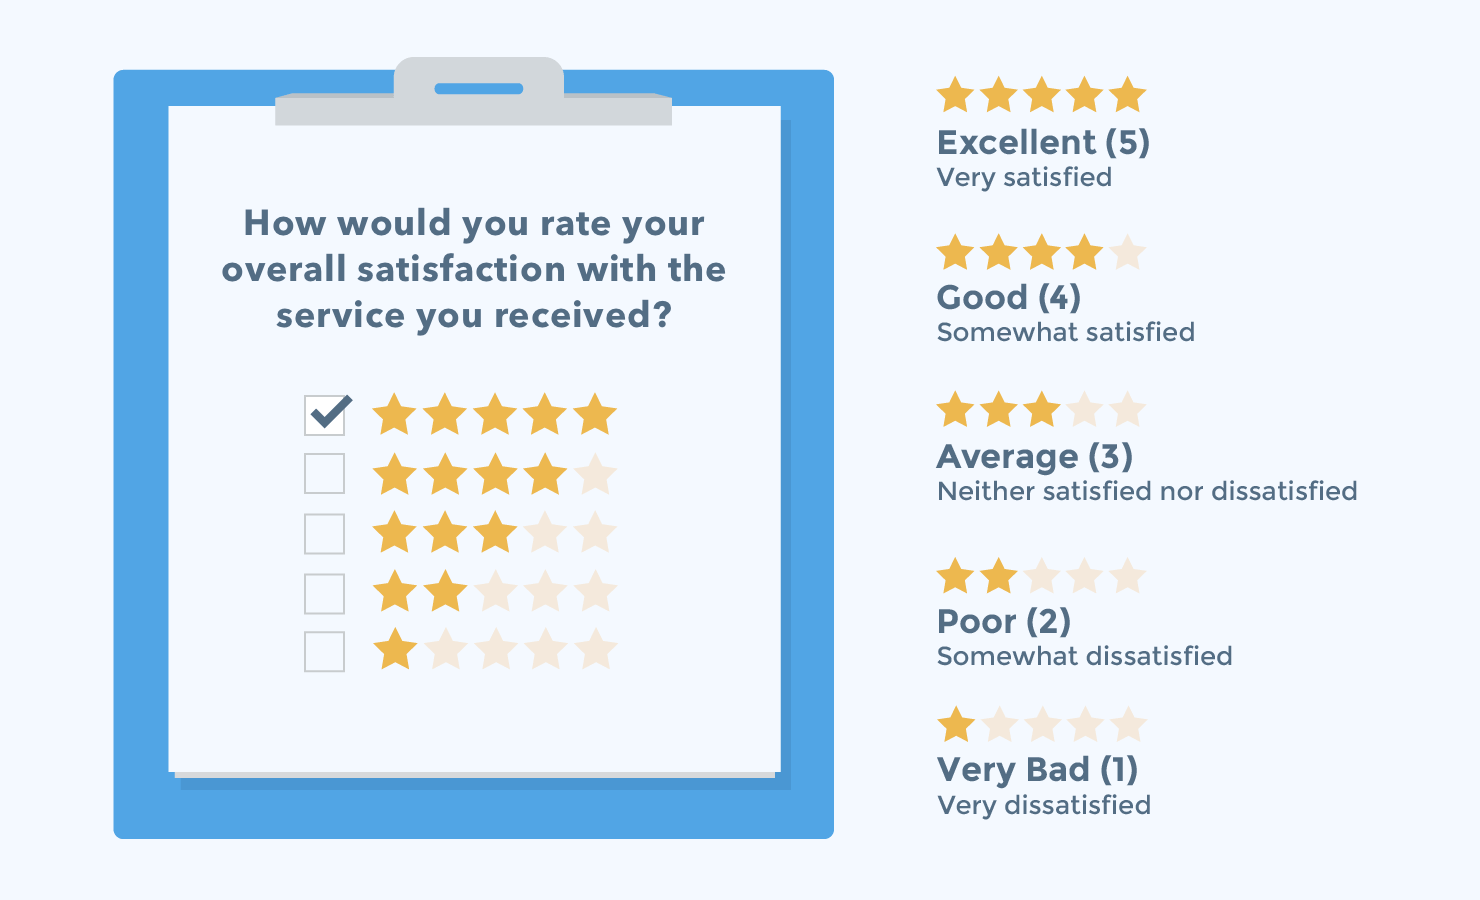 CSAT surveys are the most popular way to measure customer satisfaction